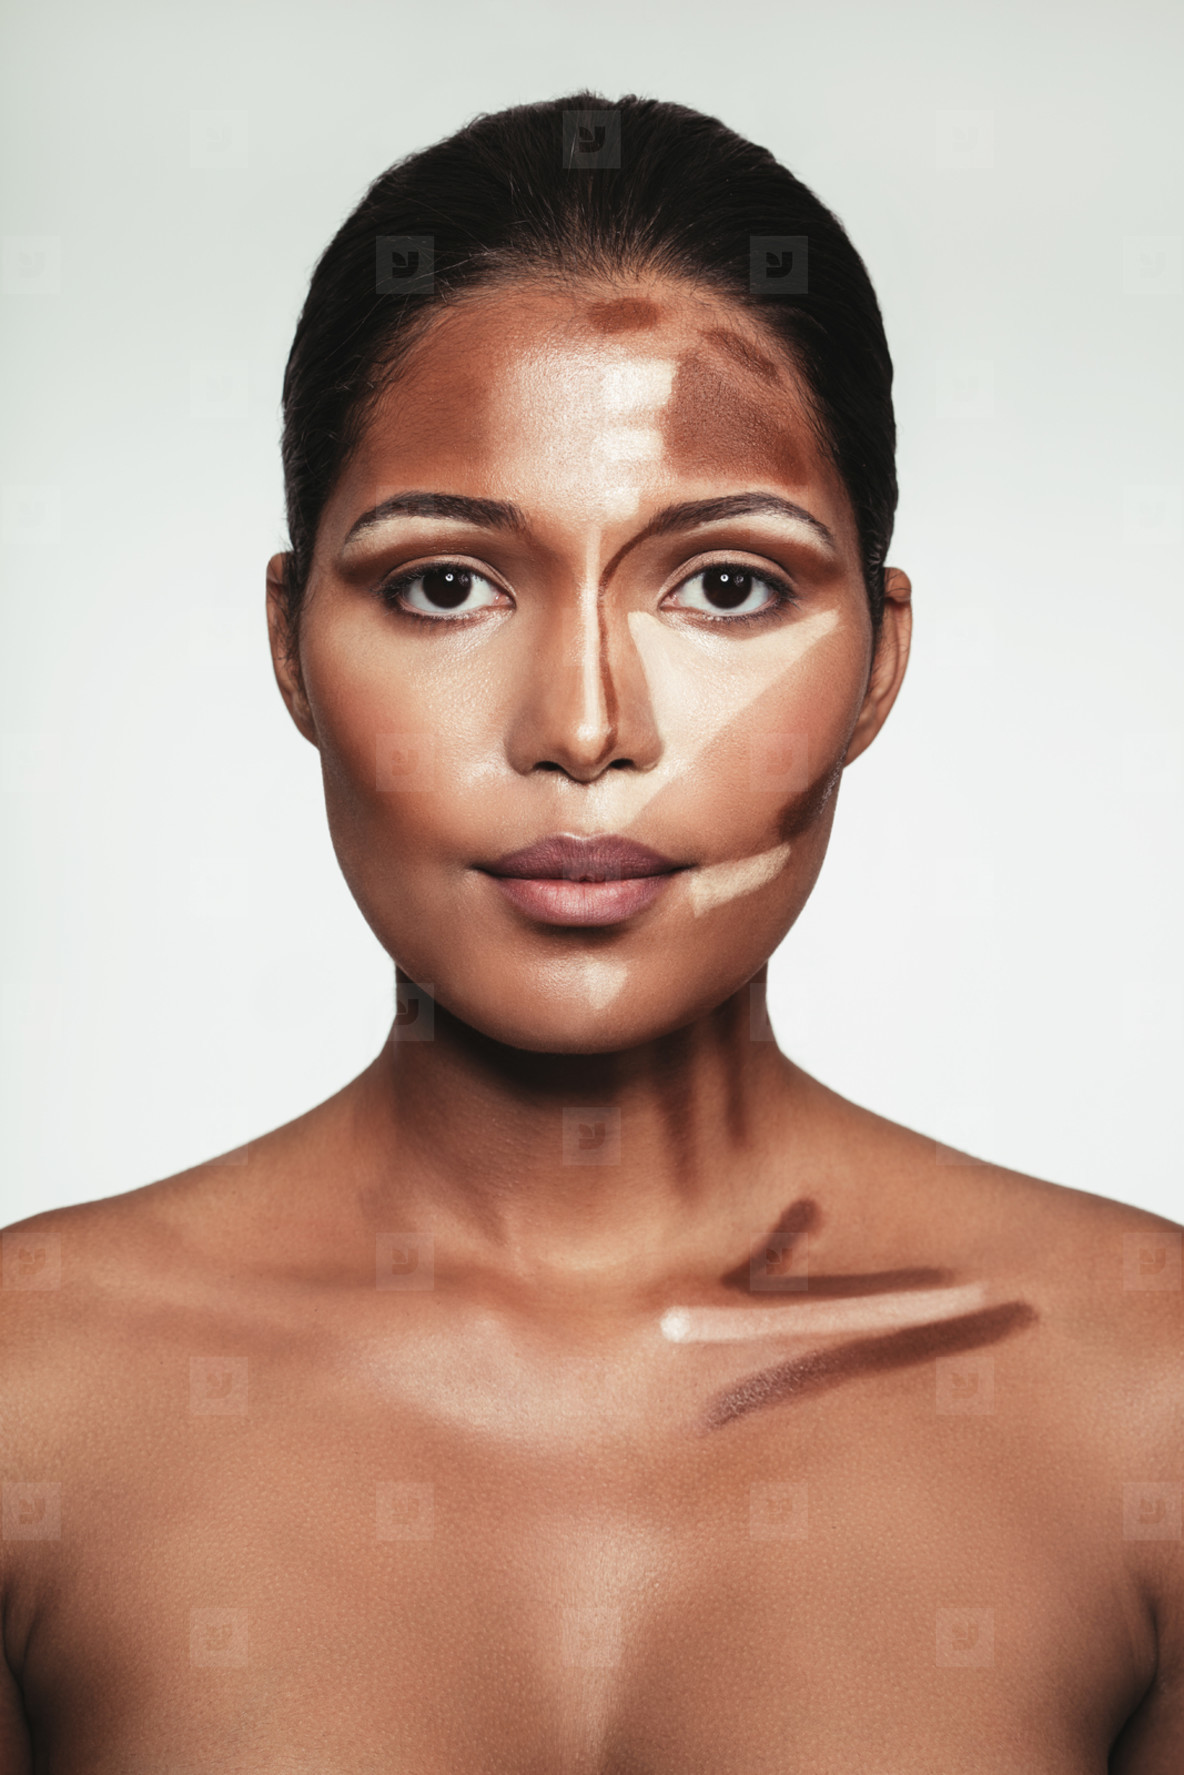 Photos - Young woman with contour and highlight makeup on face - YouWorkForThem